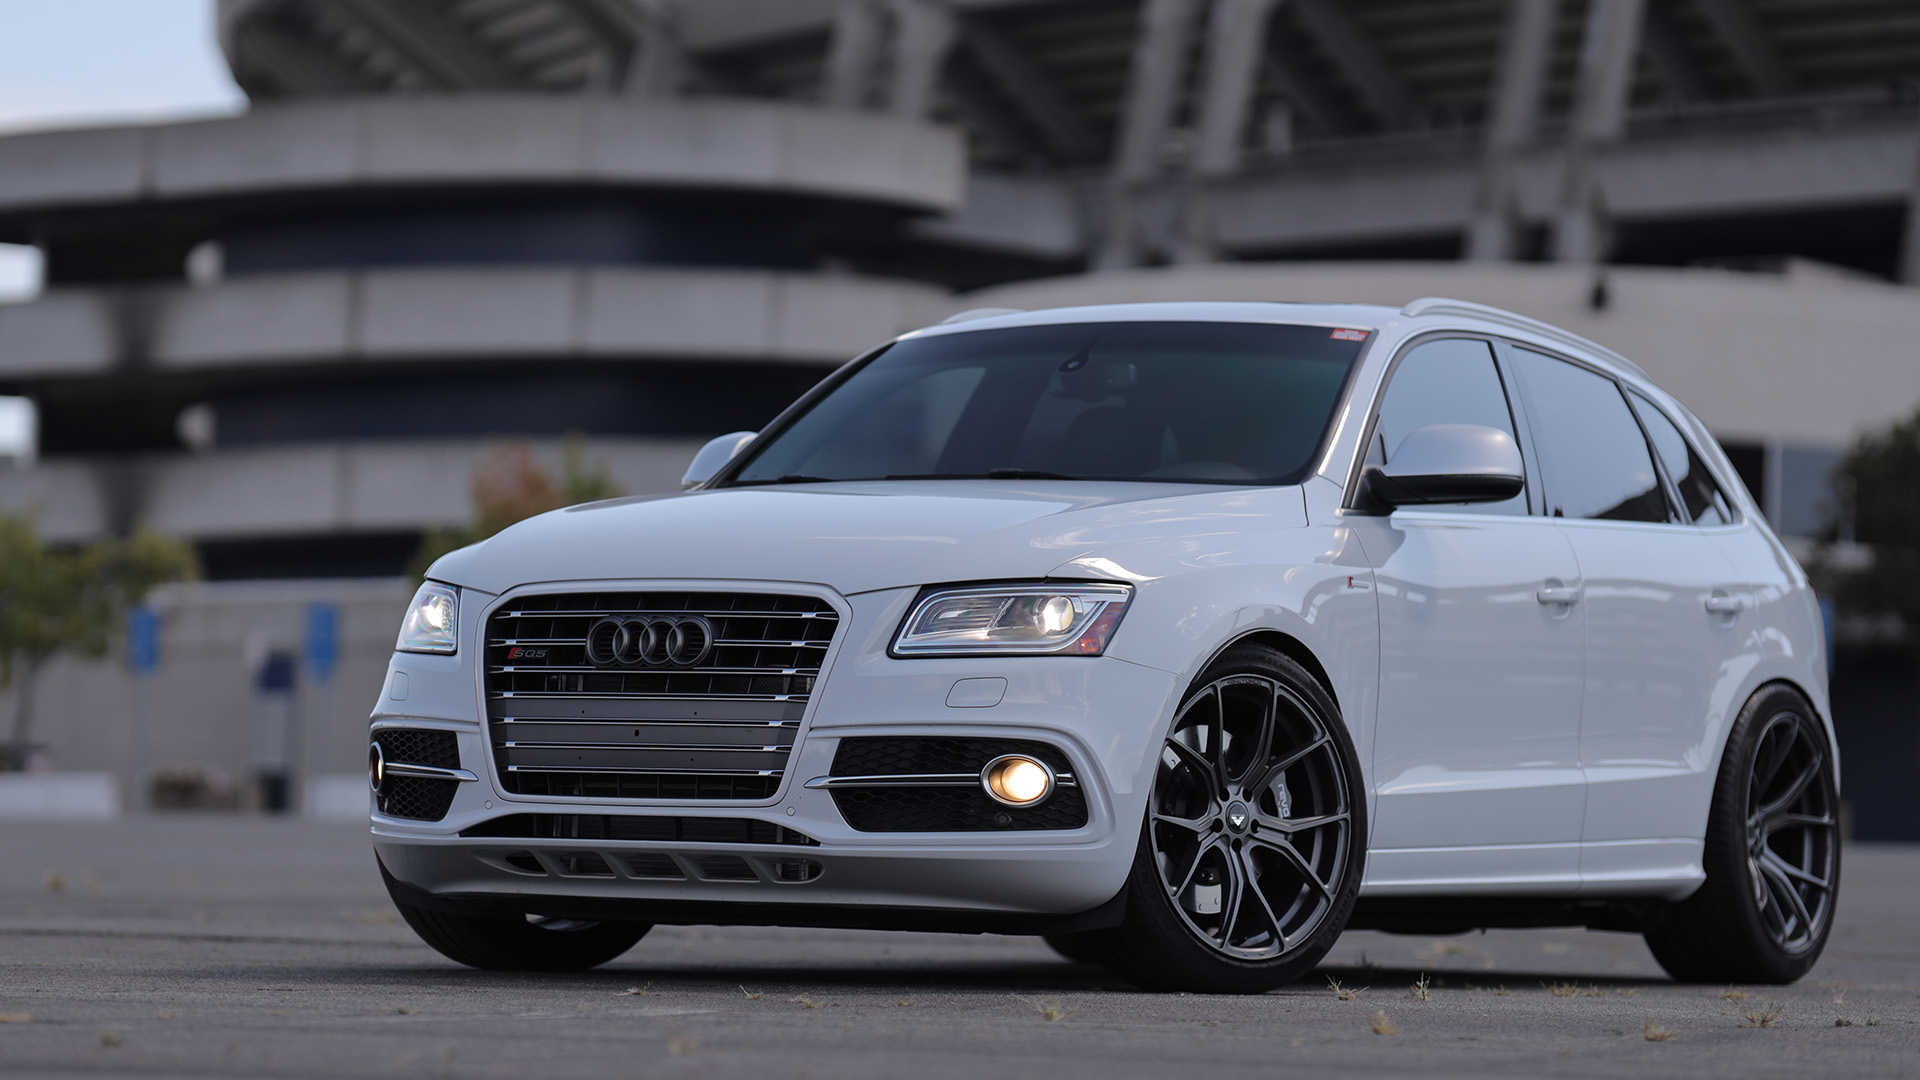 Supercharged And Sophisticated - Audi SQ5